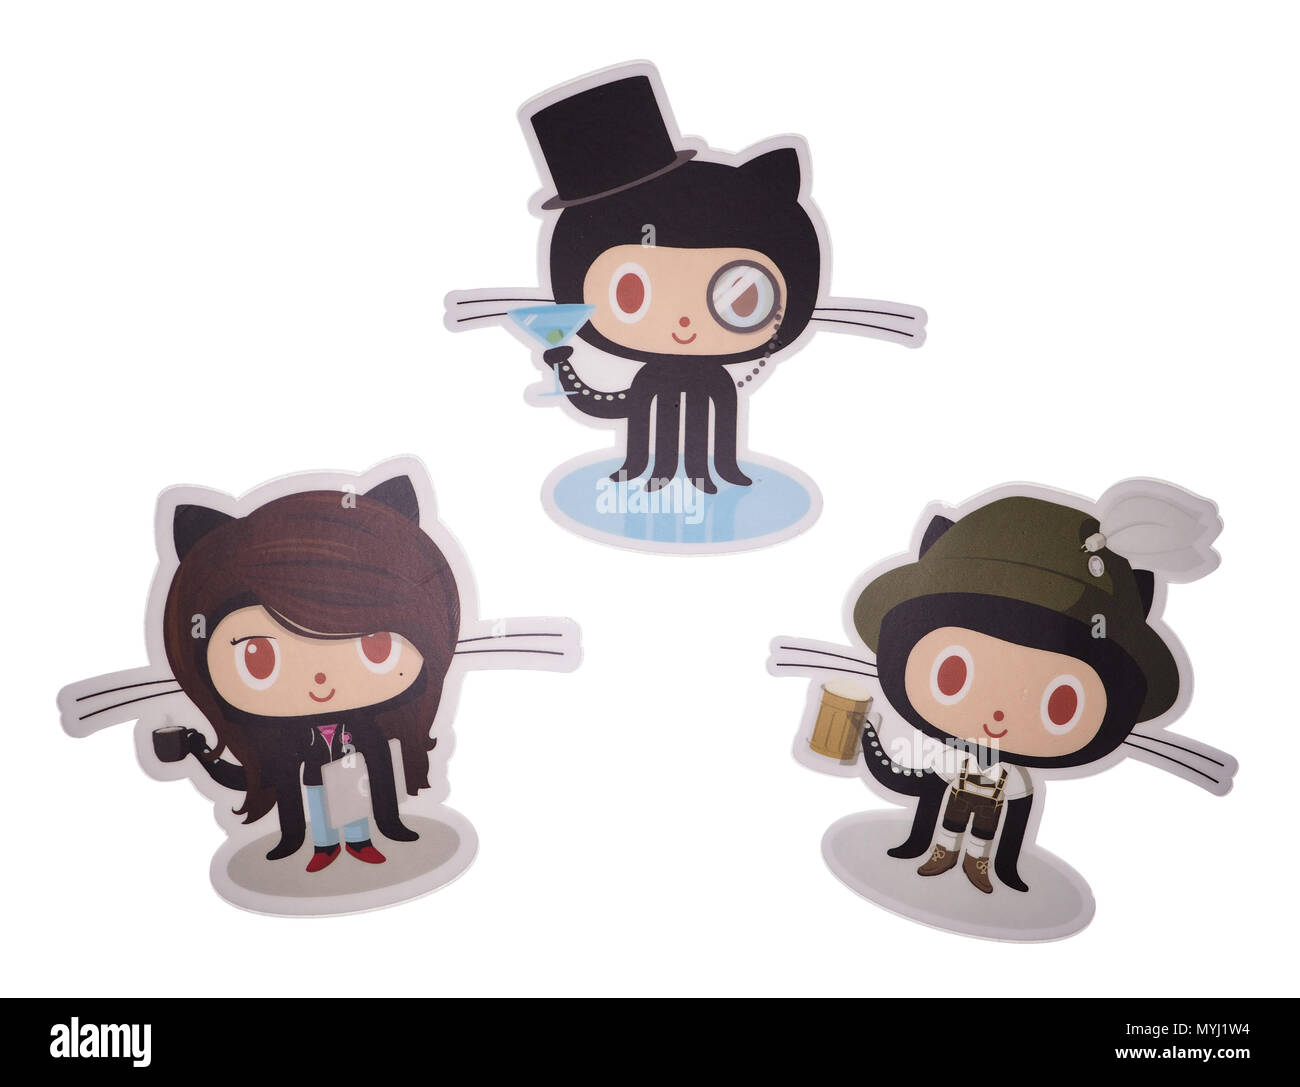 Photo of souvenir stickers with GitHub's company mascots